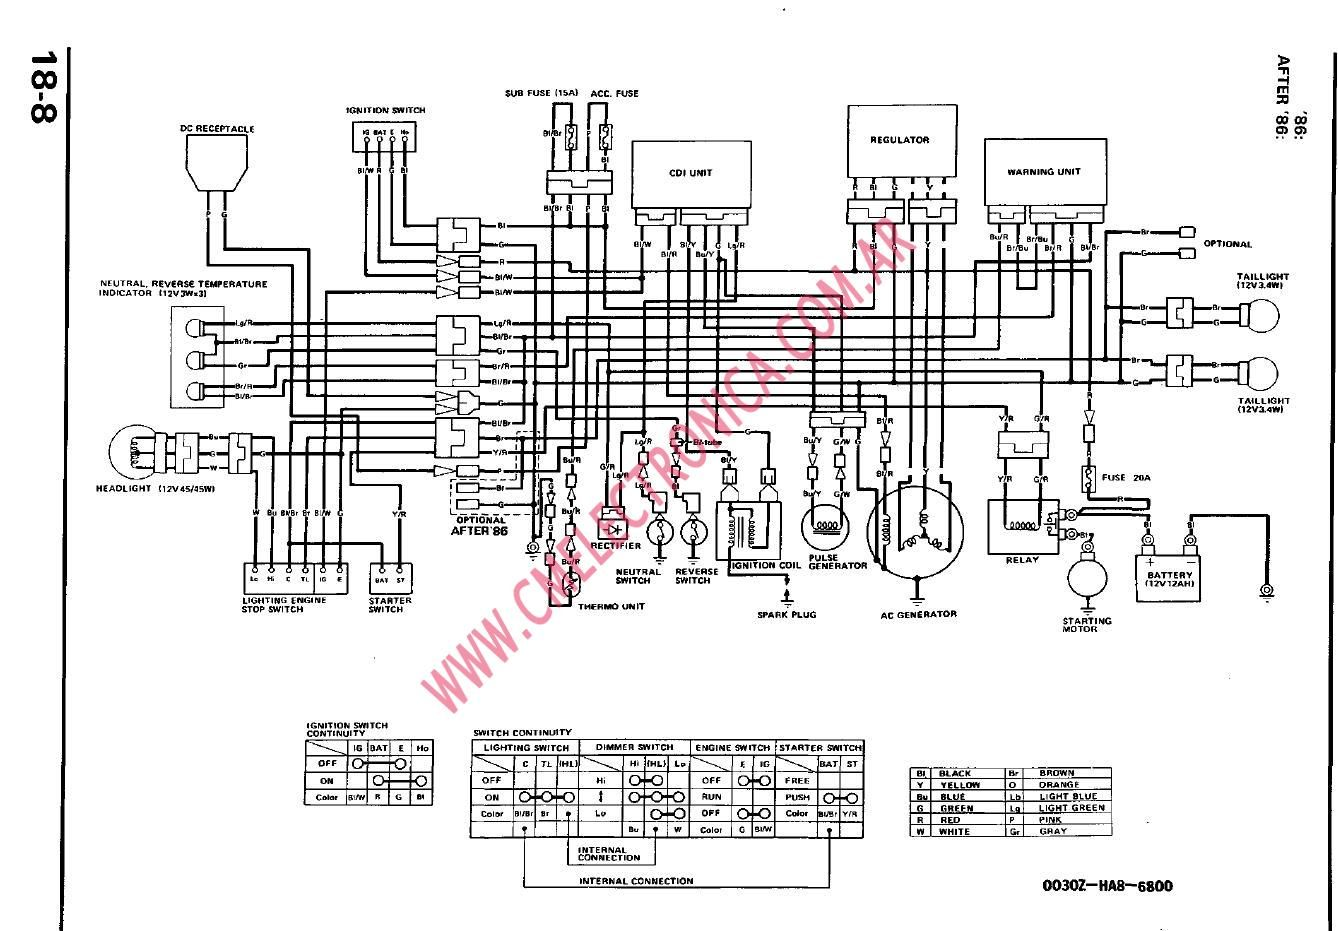 Wiring Diagram For Honda 300ex